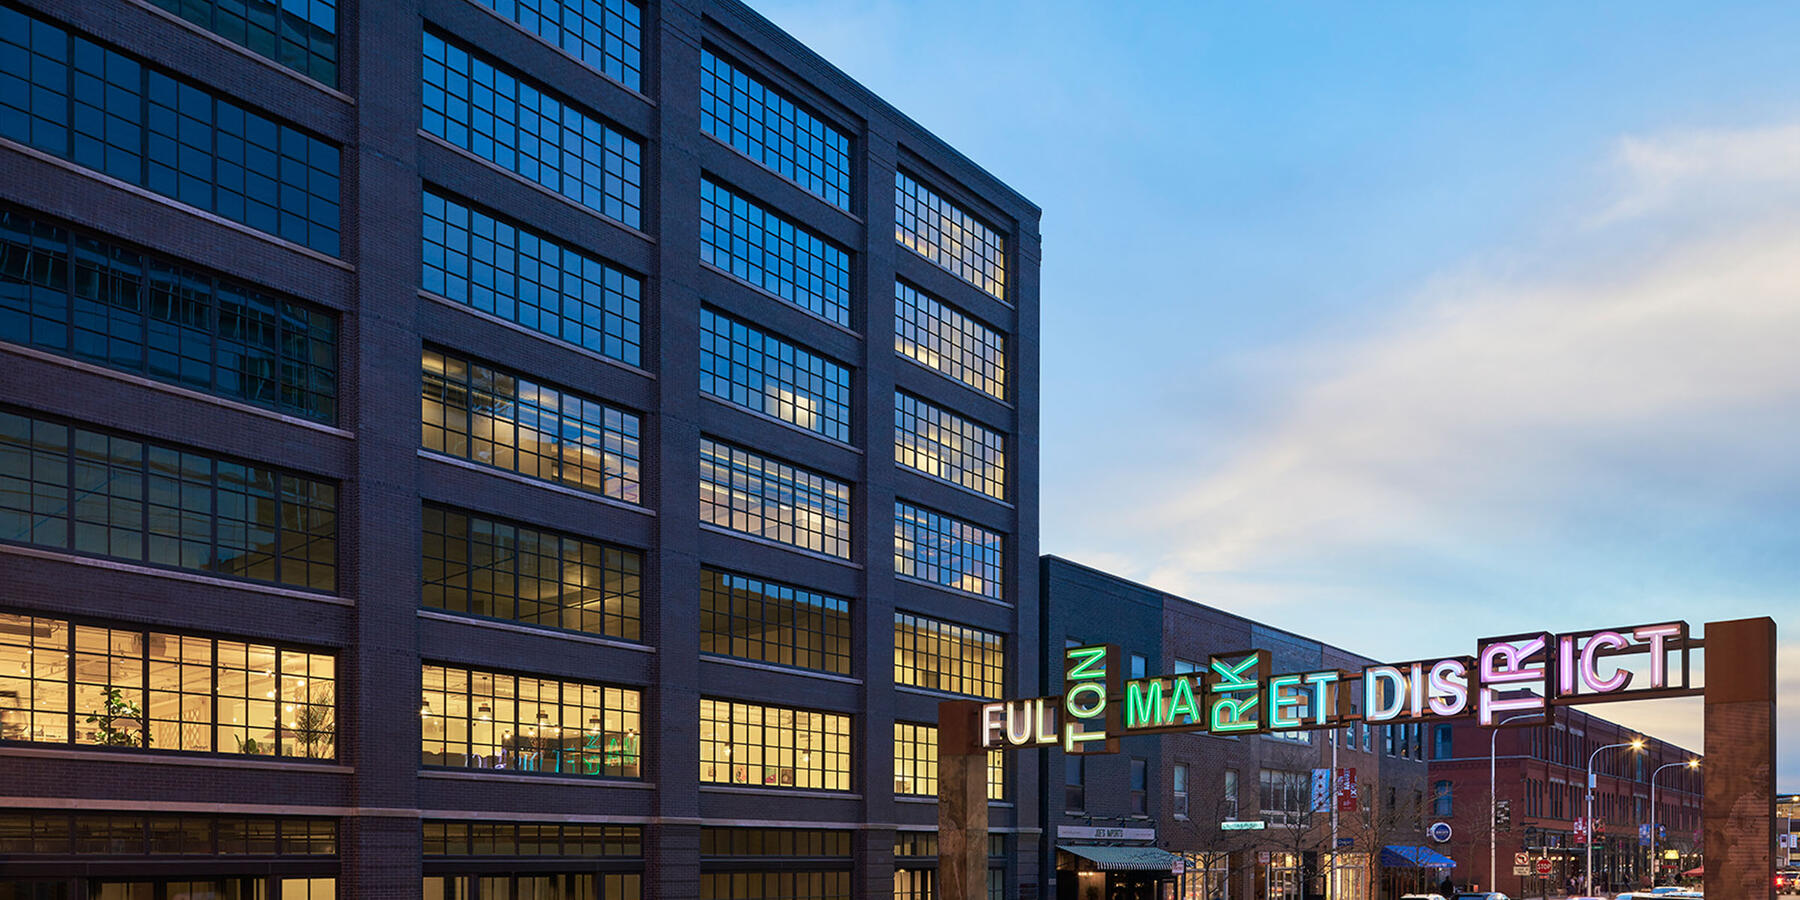 High End Office Construction Chicago - 811 W Fulton exterior view at night with Fulton Market sign